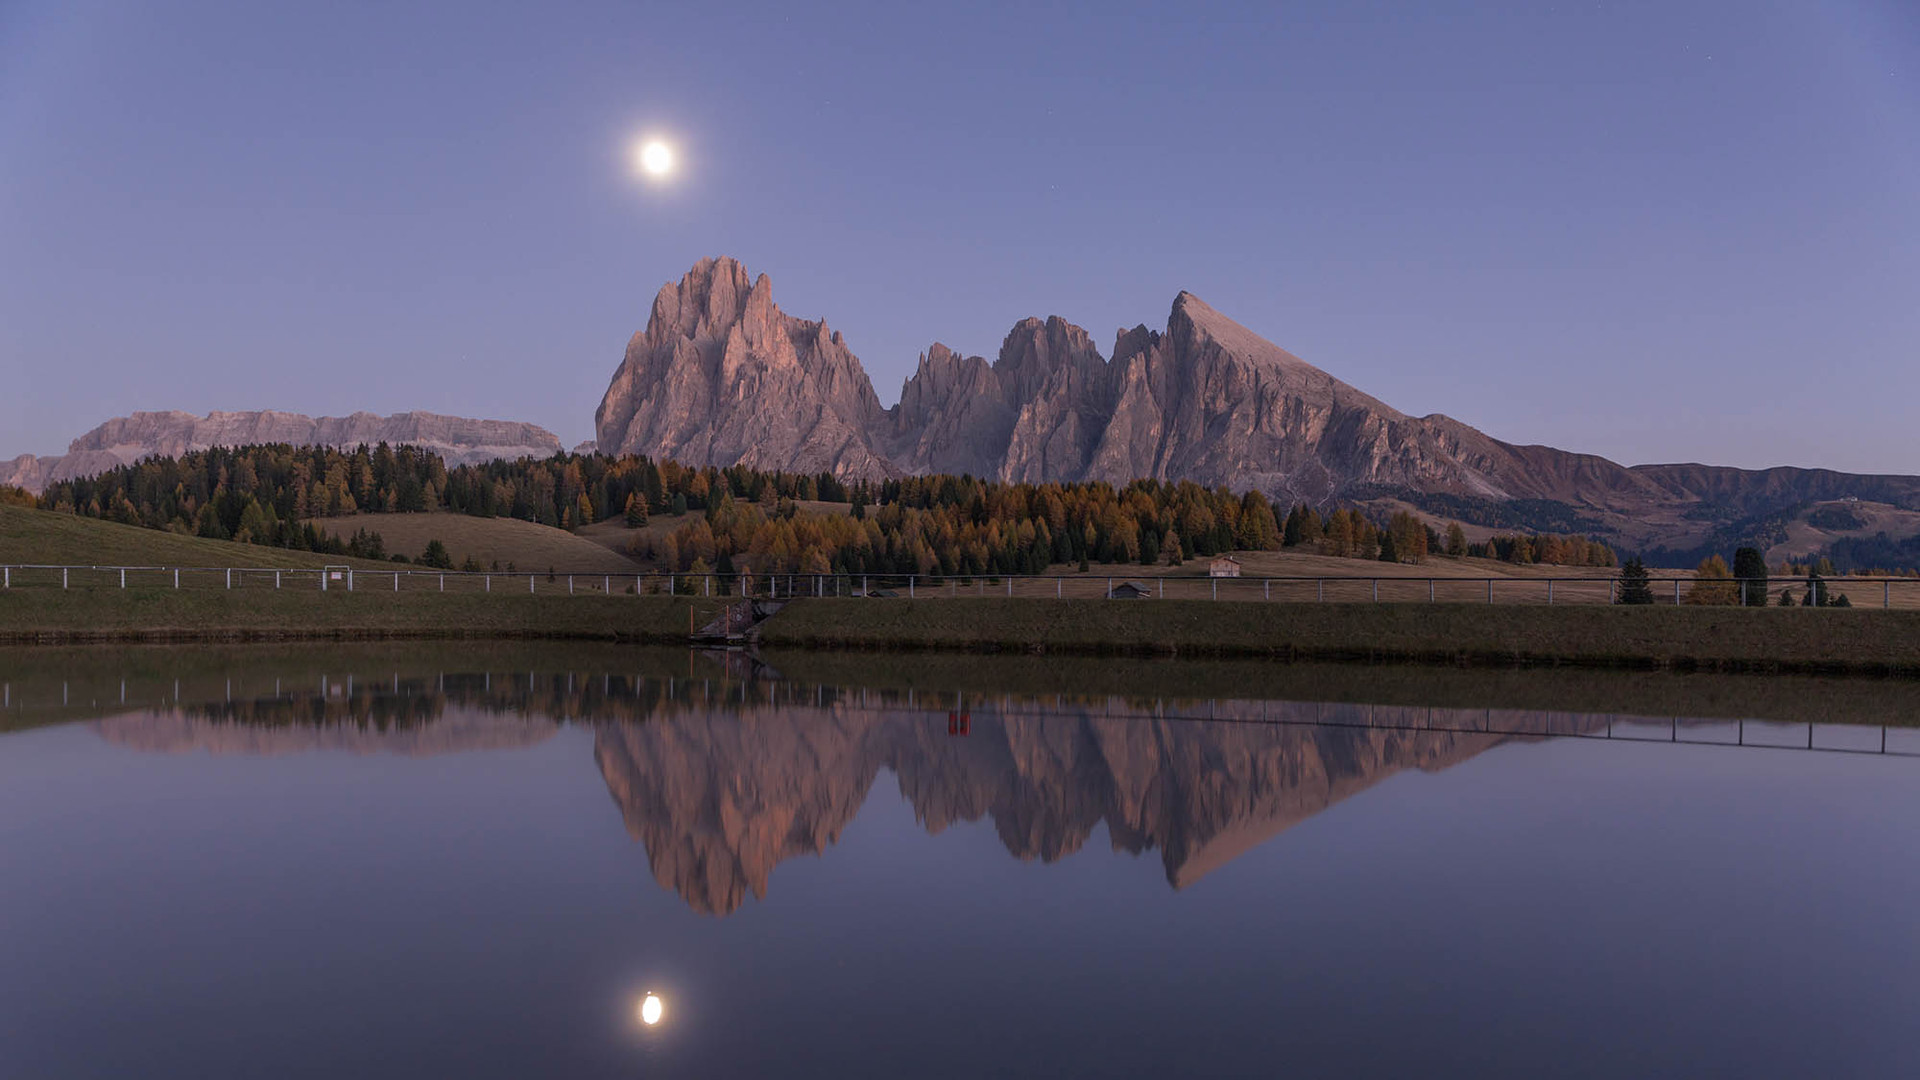 Autumn in the Dolomites